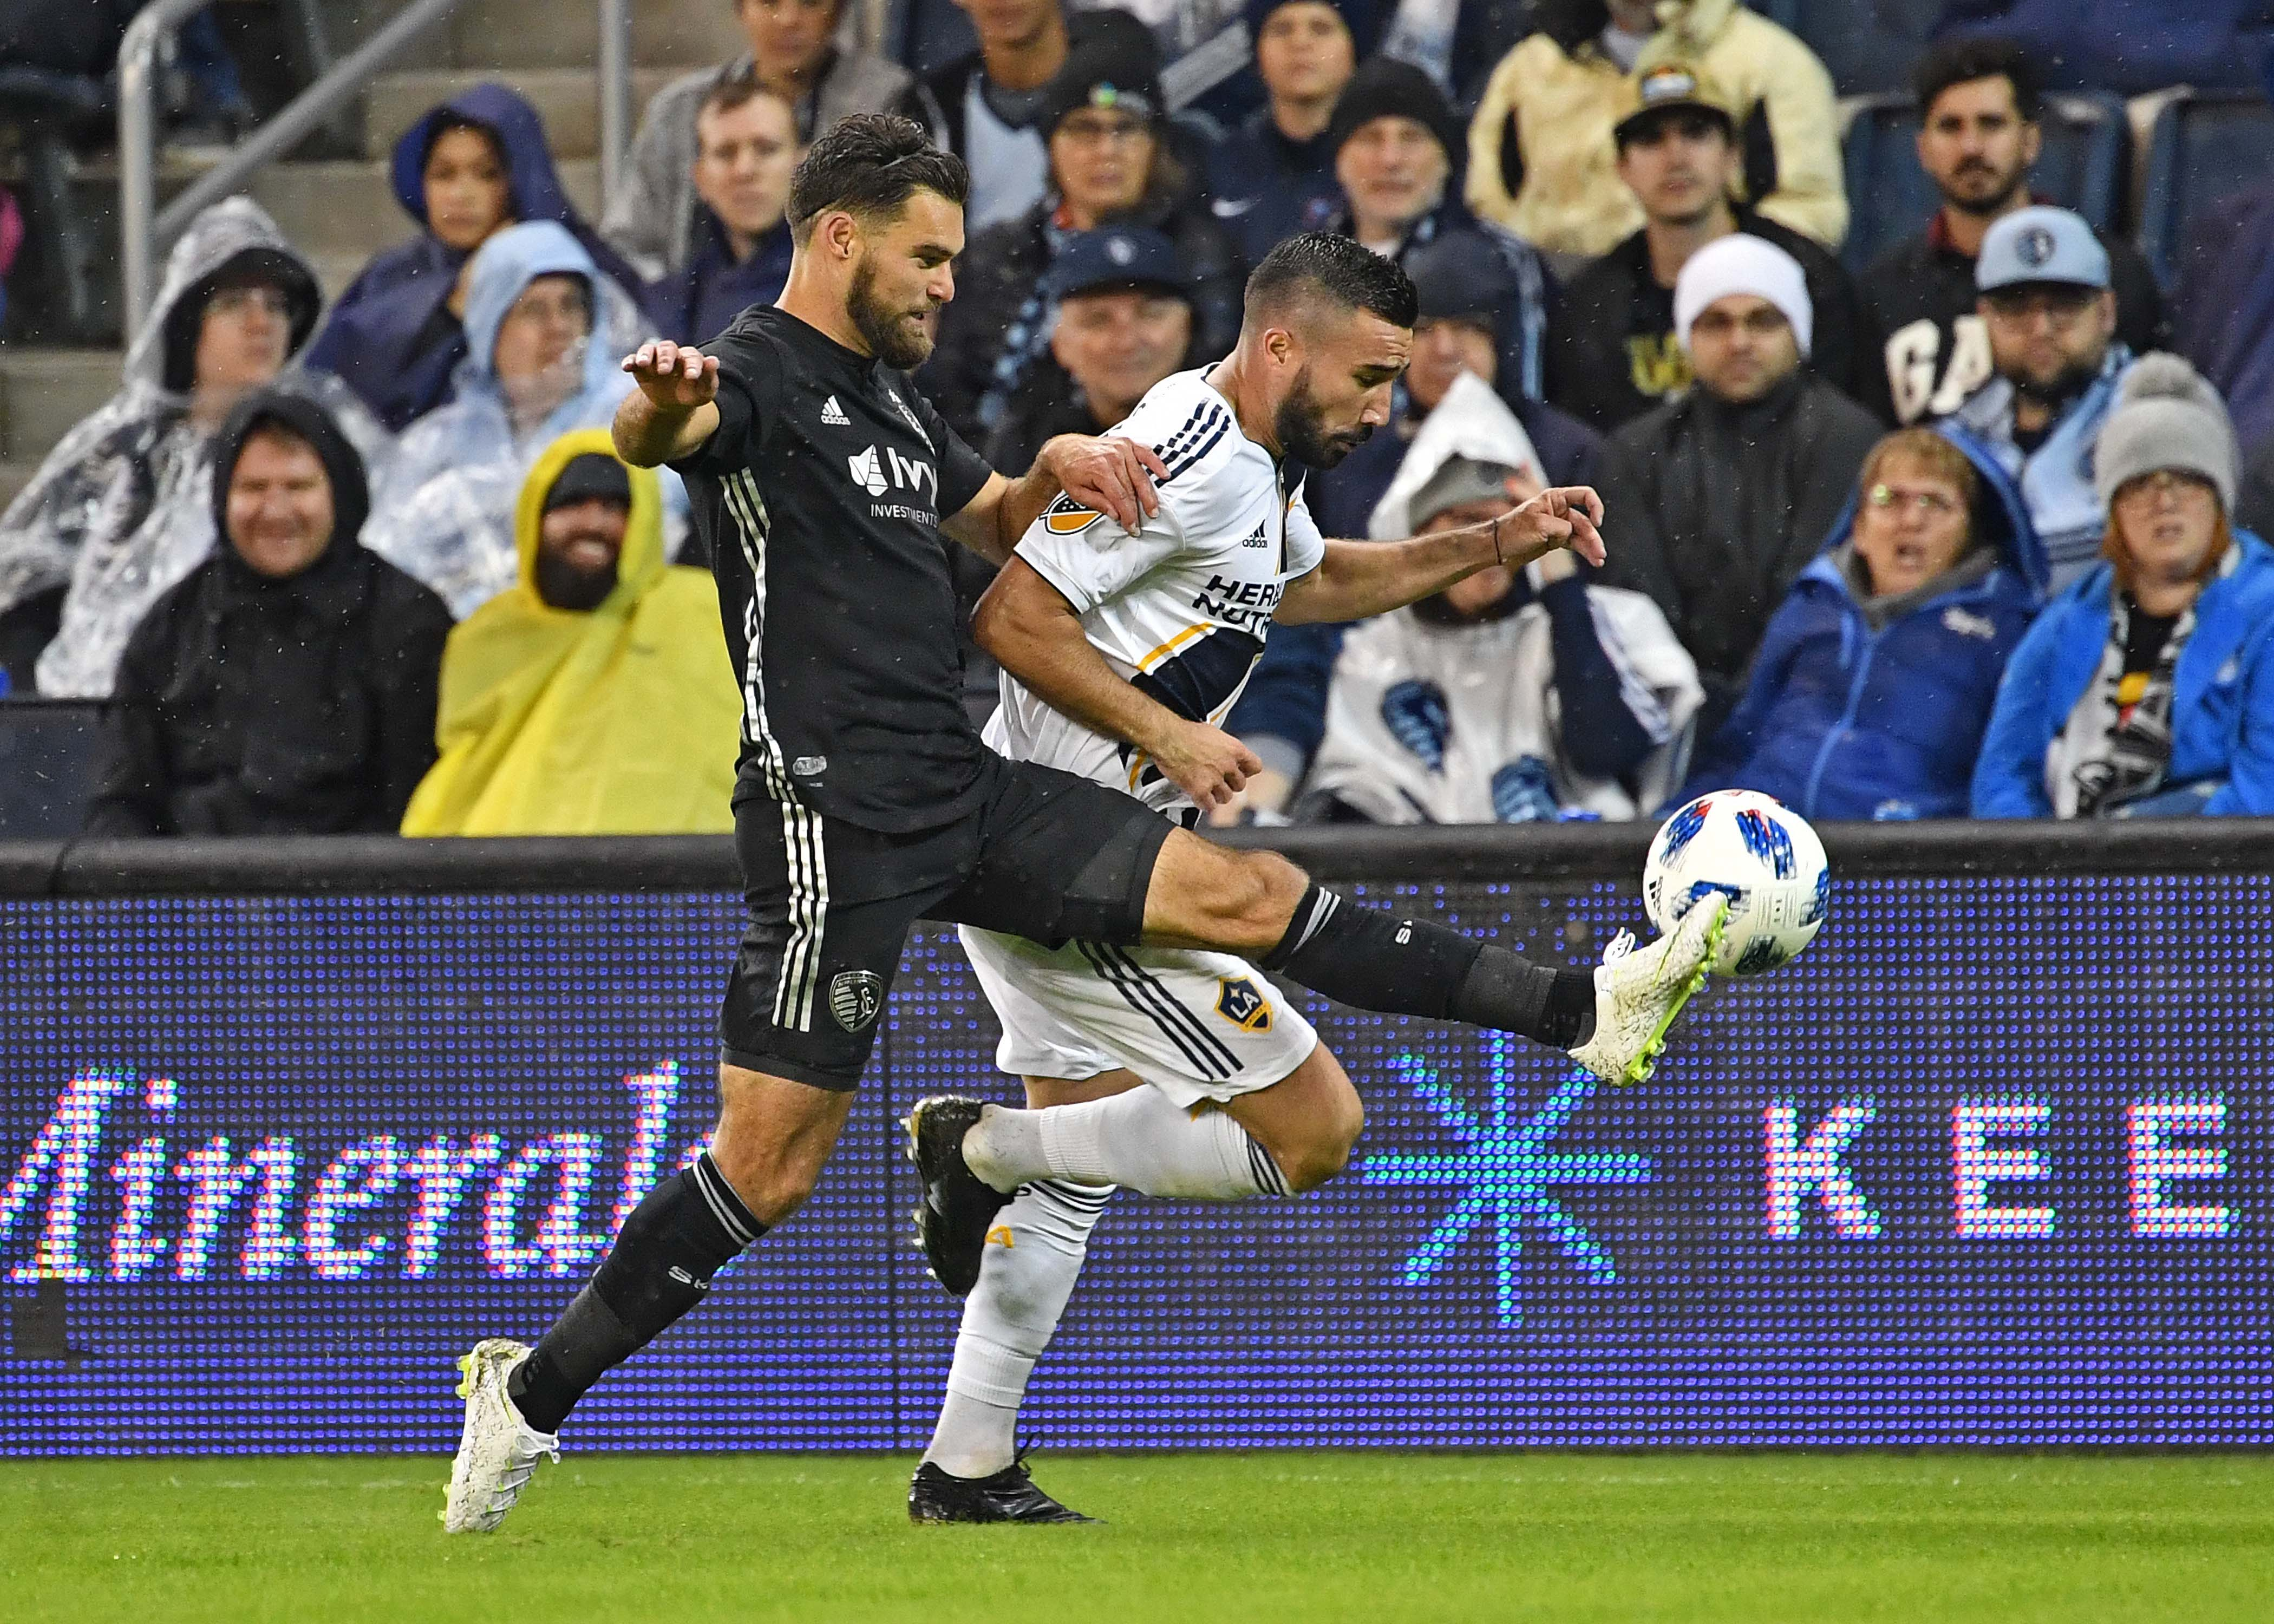 Sporting KC v LA Galaxy: Preview and How to Watch and Stream